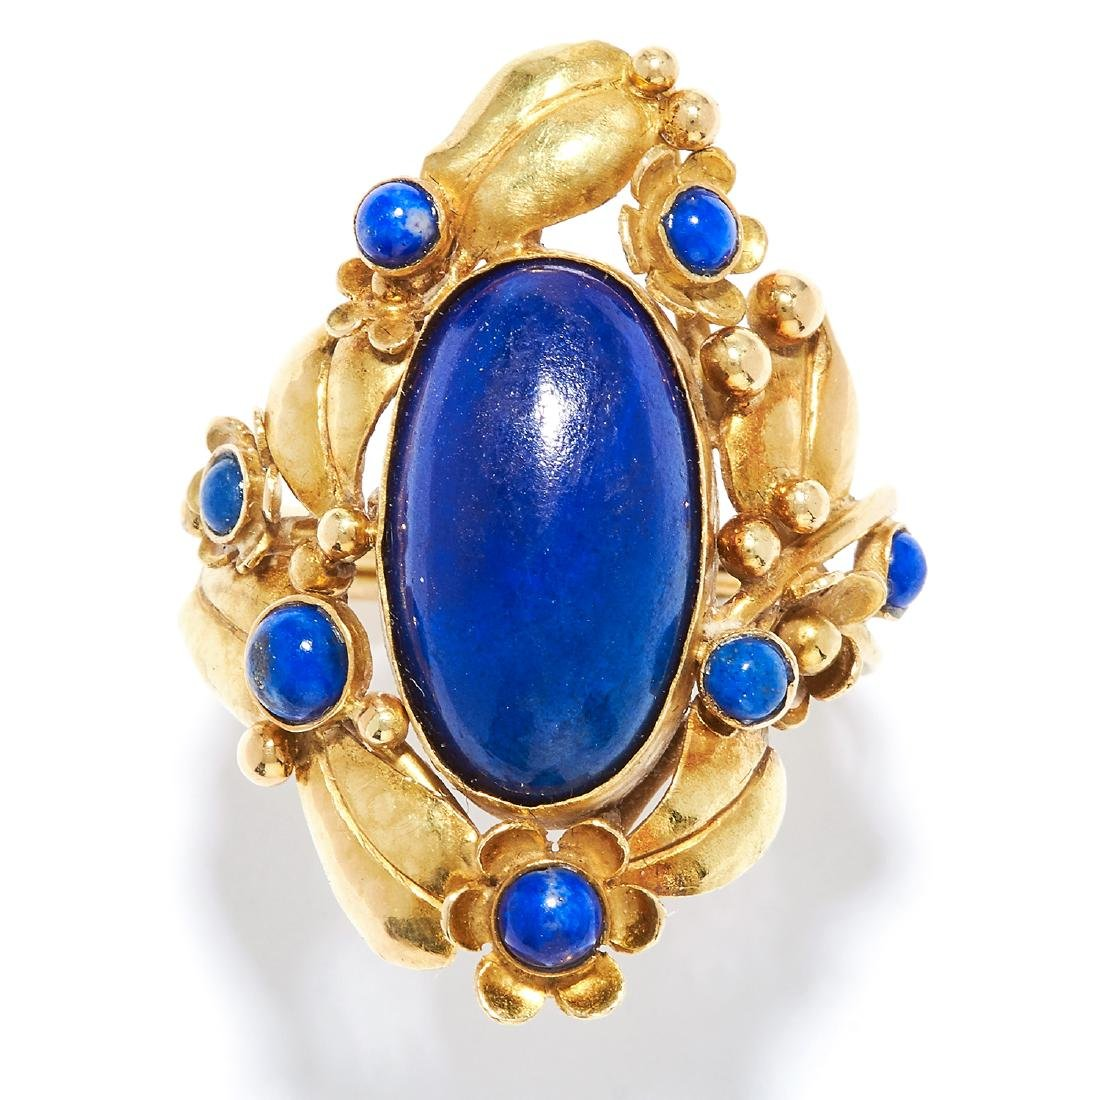 LAPIS LAZULI DRESS RING in 18ct yellow gold, set with